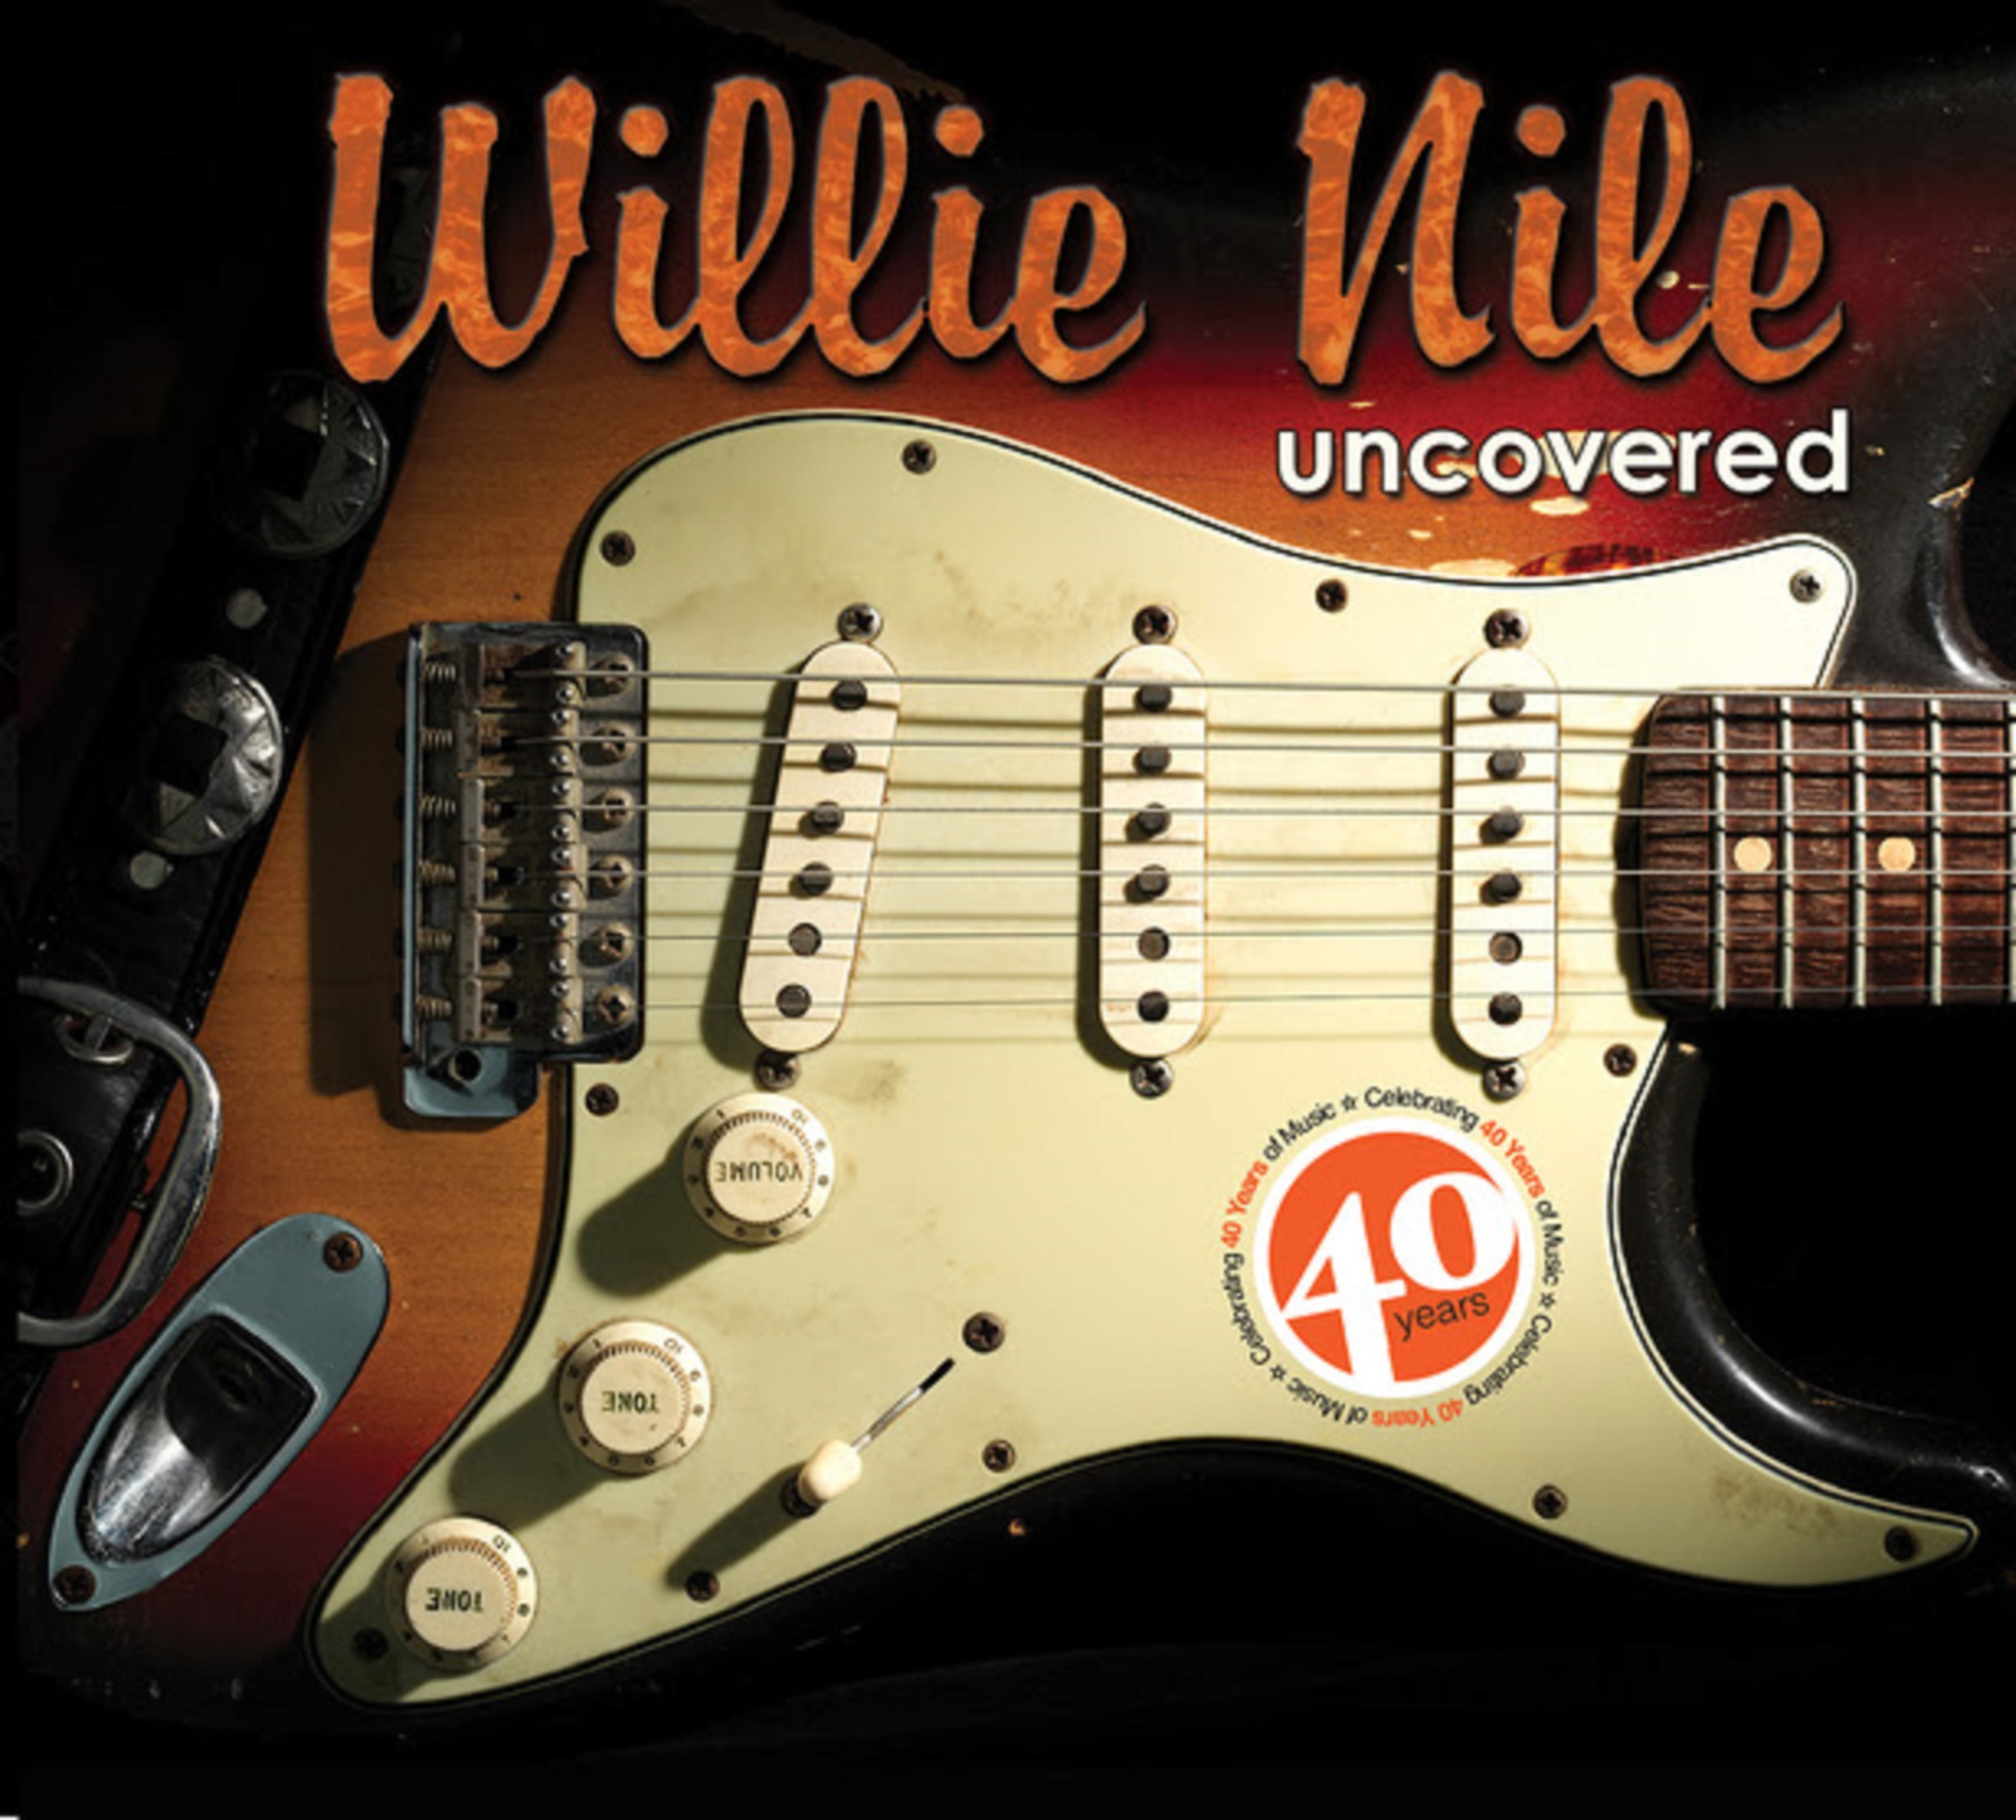 Nils Lofgren, Graham Parker, Richard Barone, Elliott Murphy and more featured on 'Willie Nile Uncovered (Celebrating 40 Years of Music)